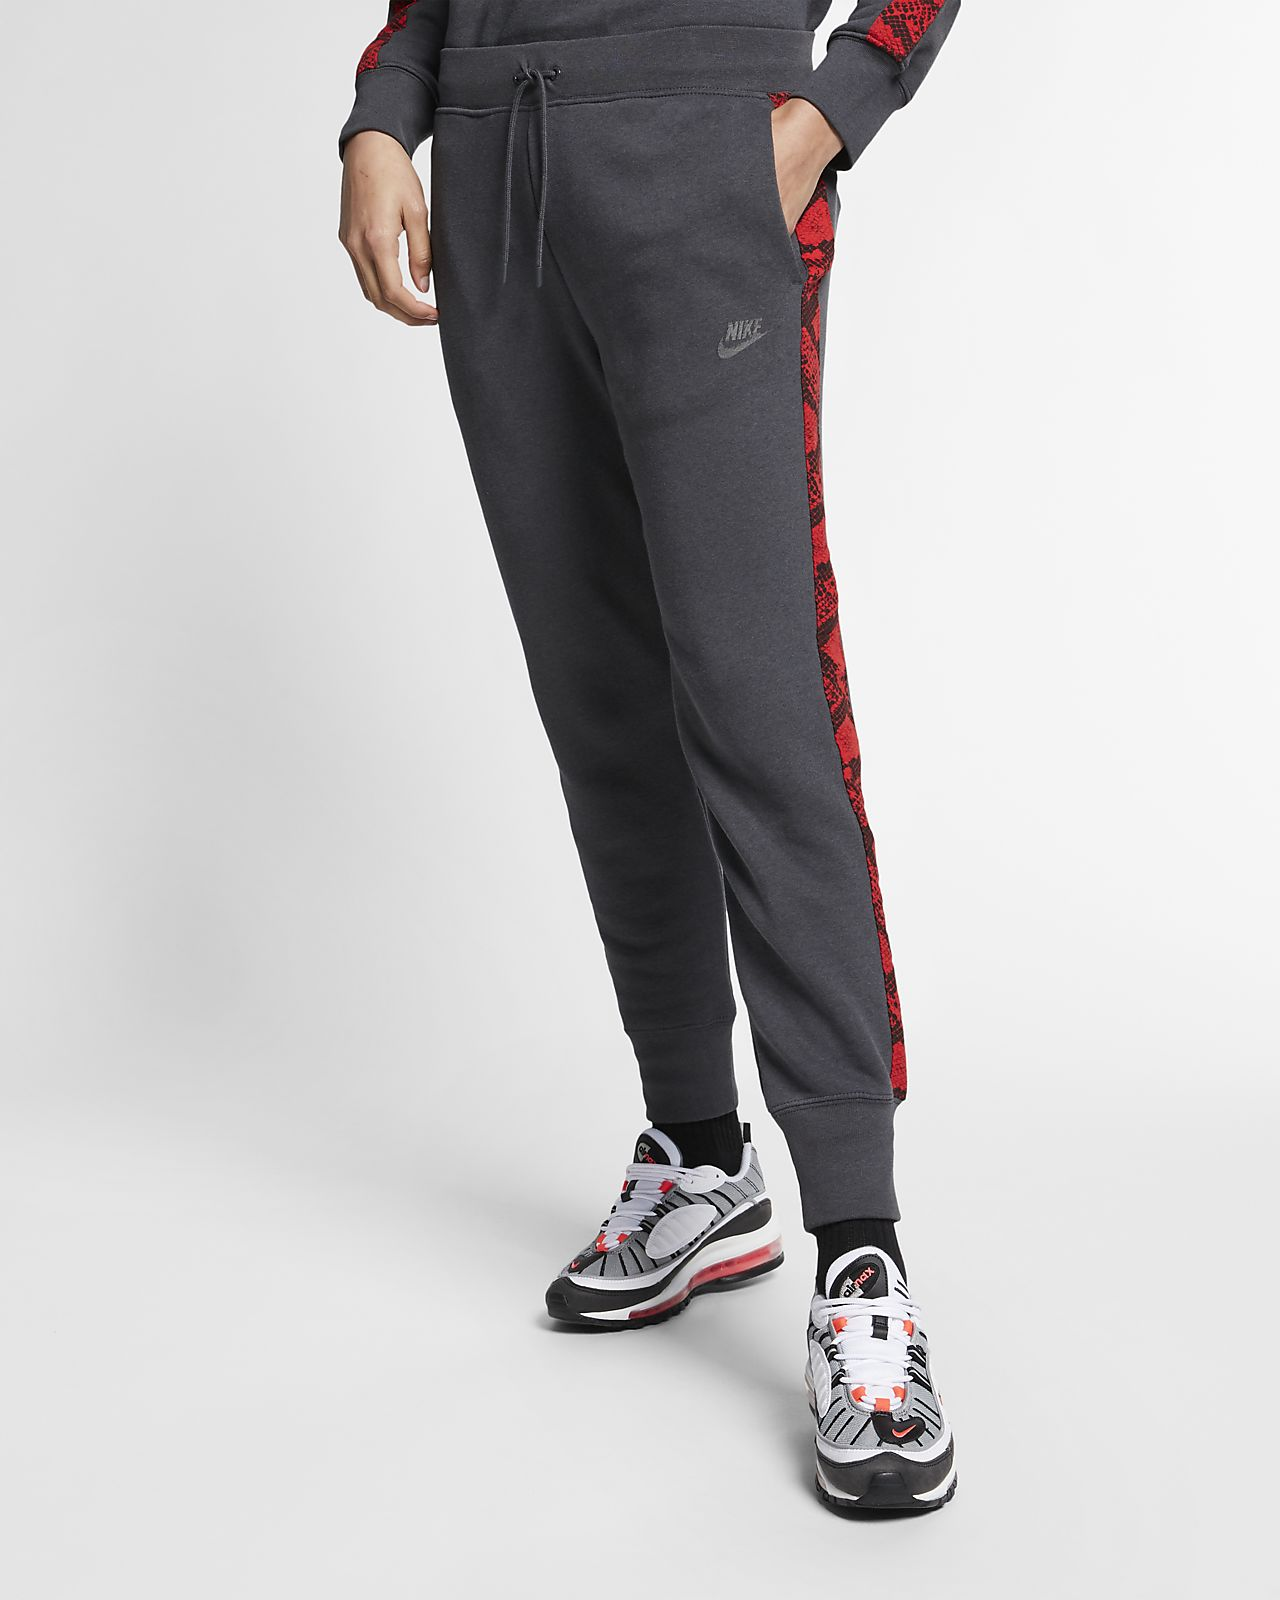 Nike Sportswear Women's Animal Trousers